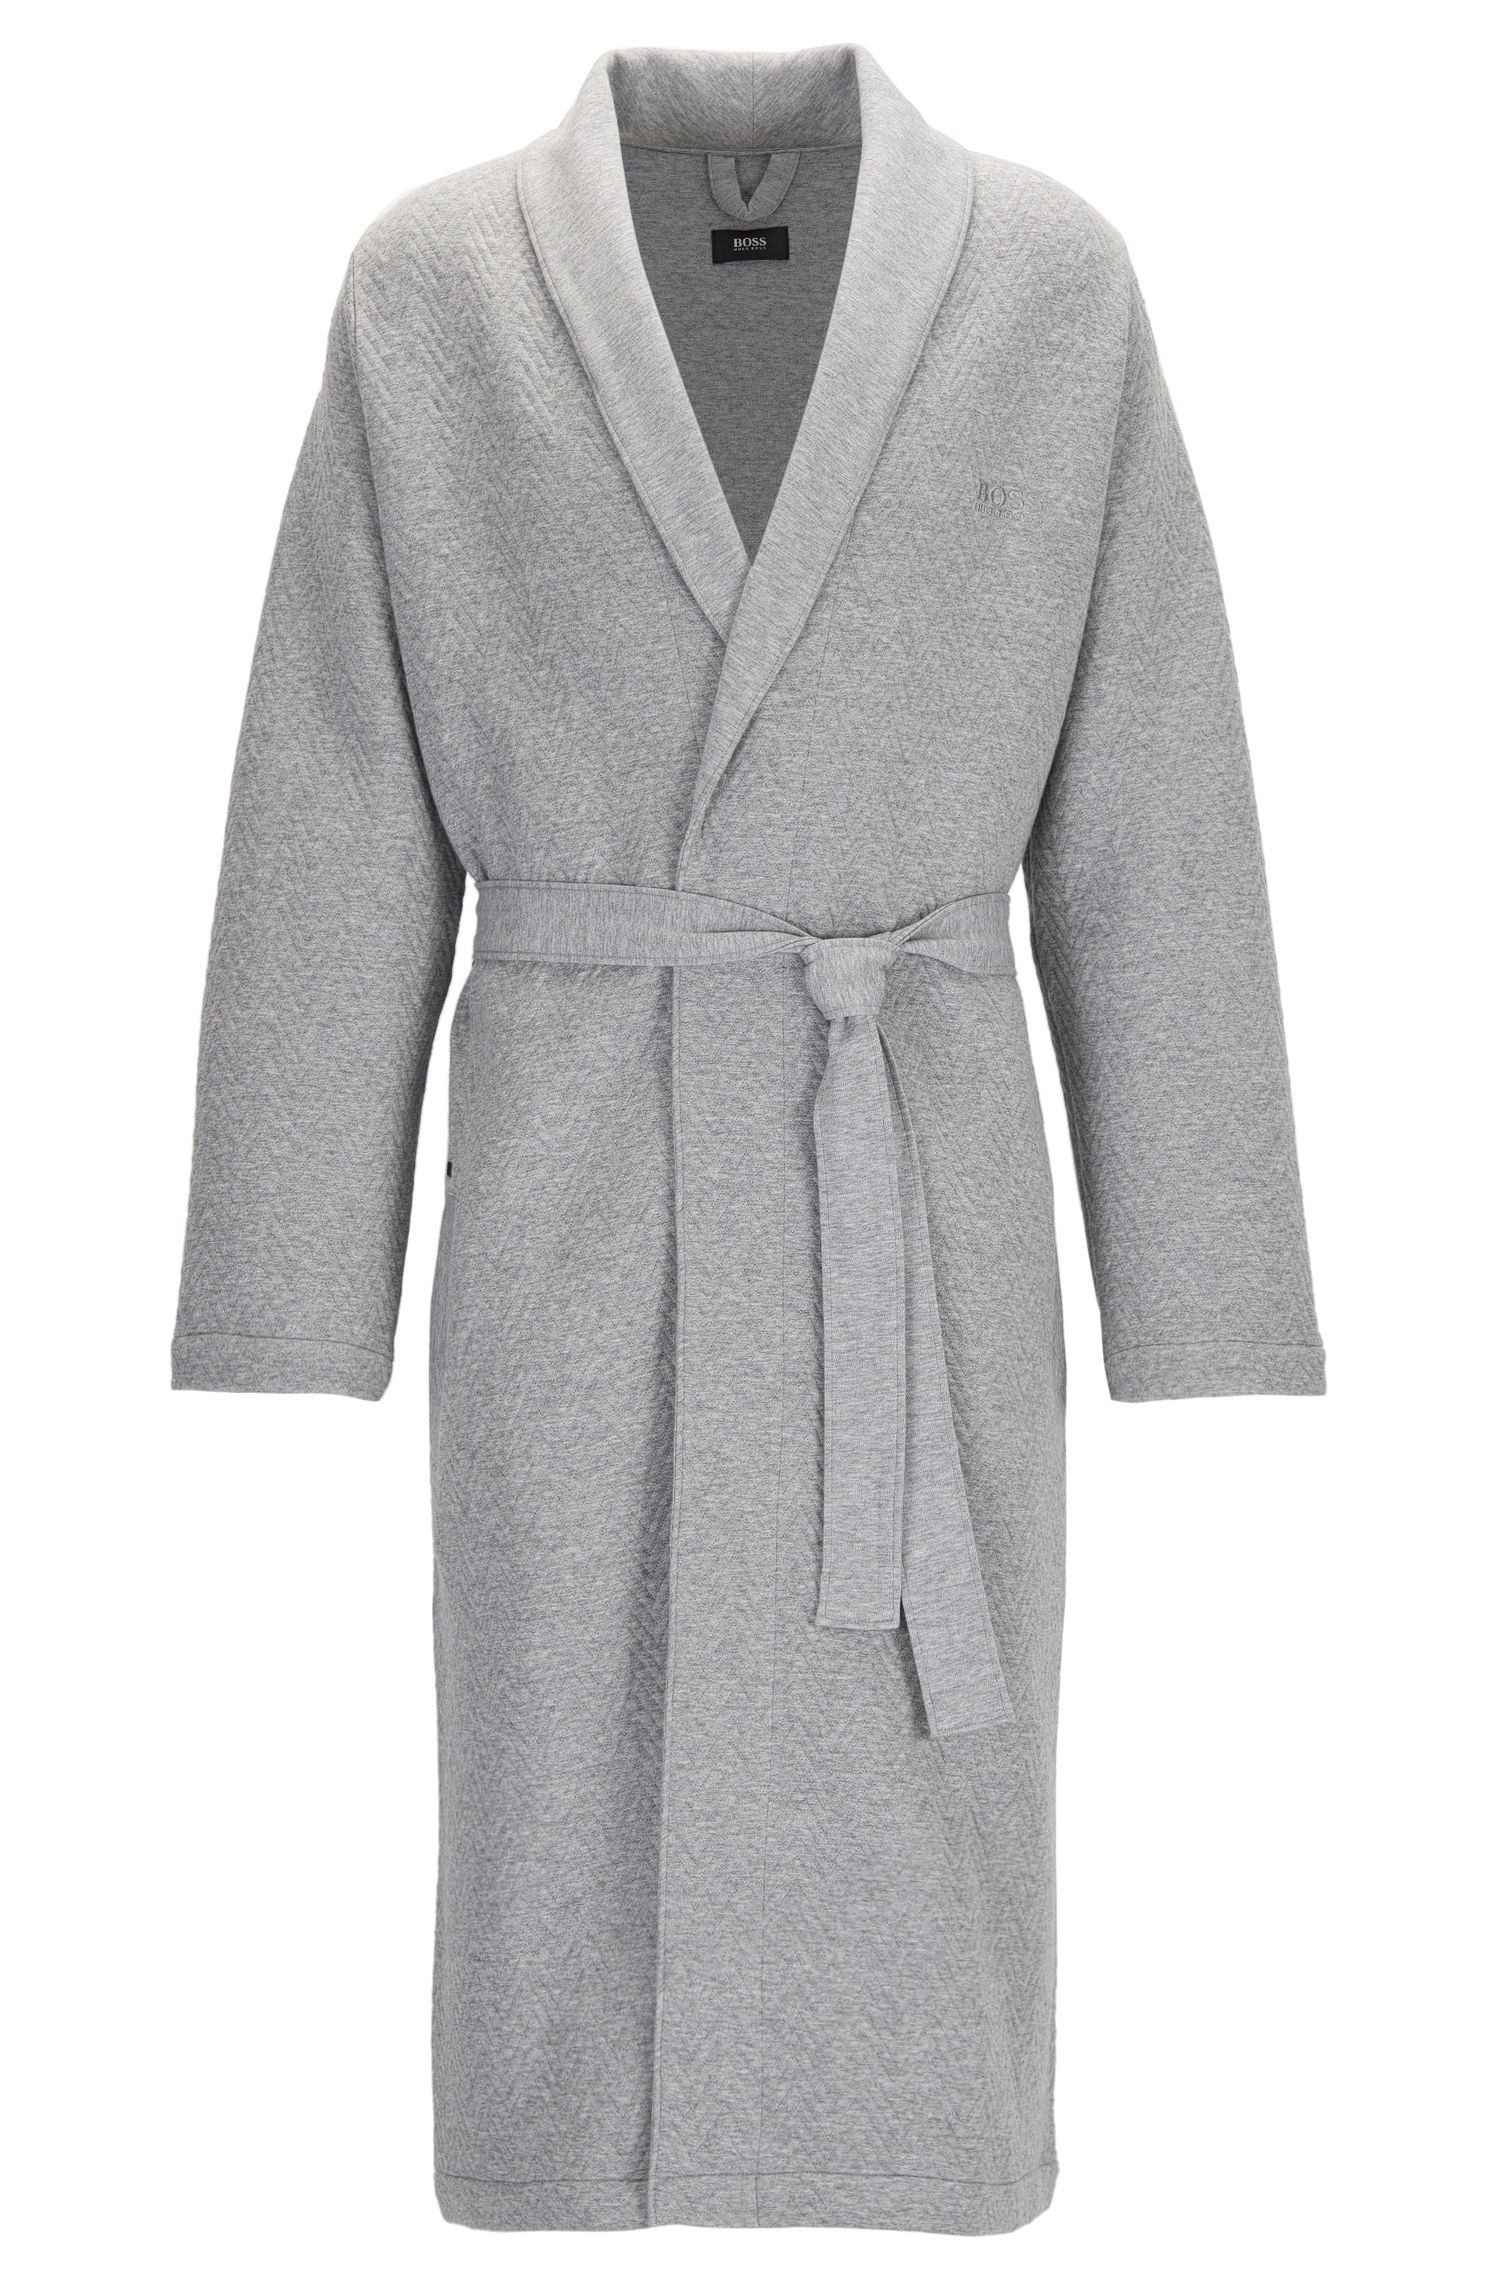 Cotton dressing gown with herringbone structure